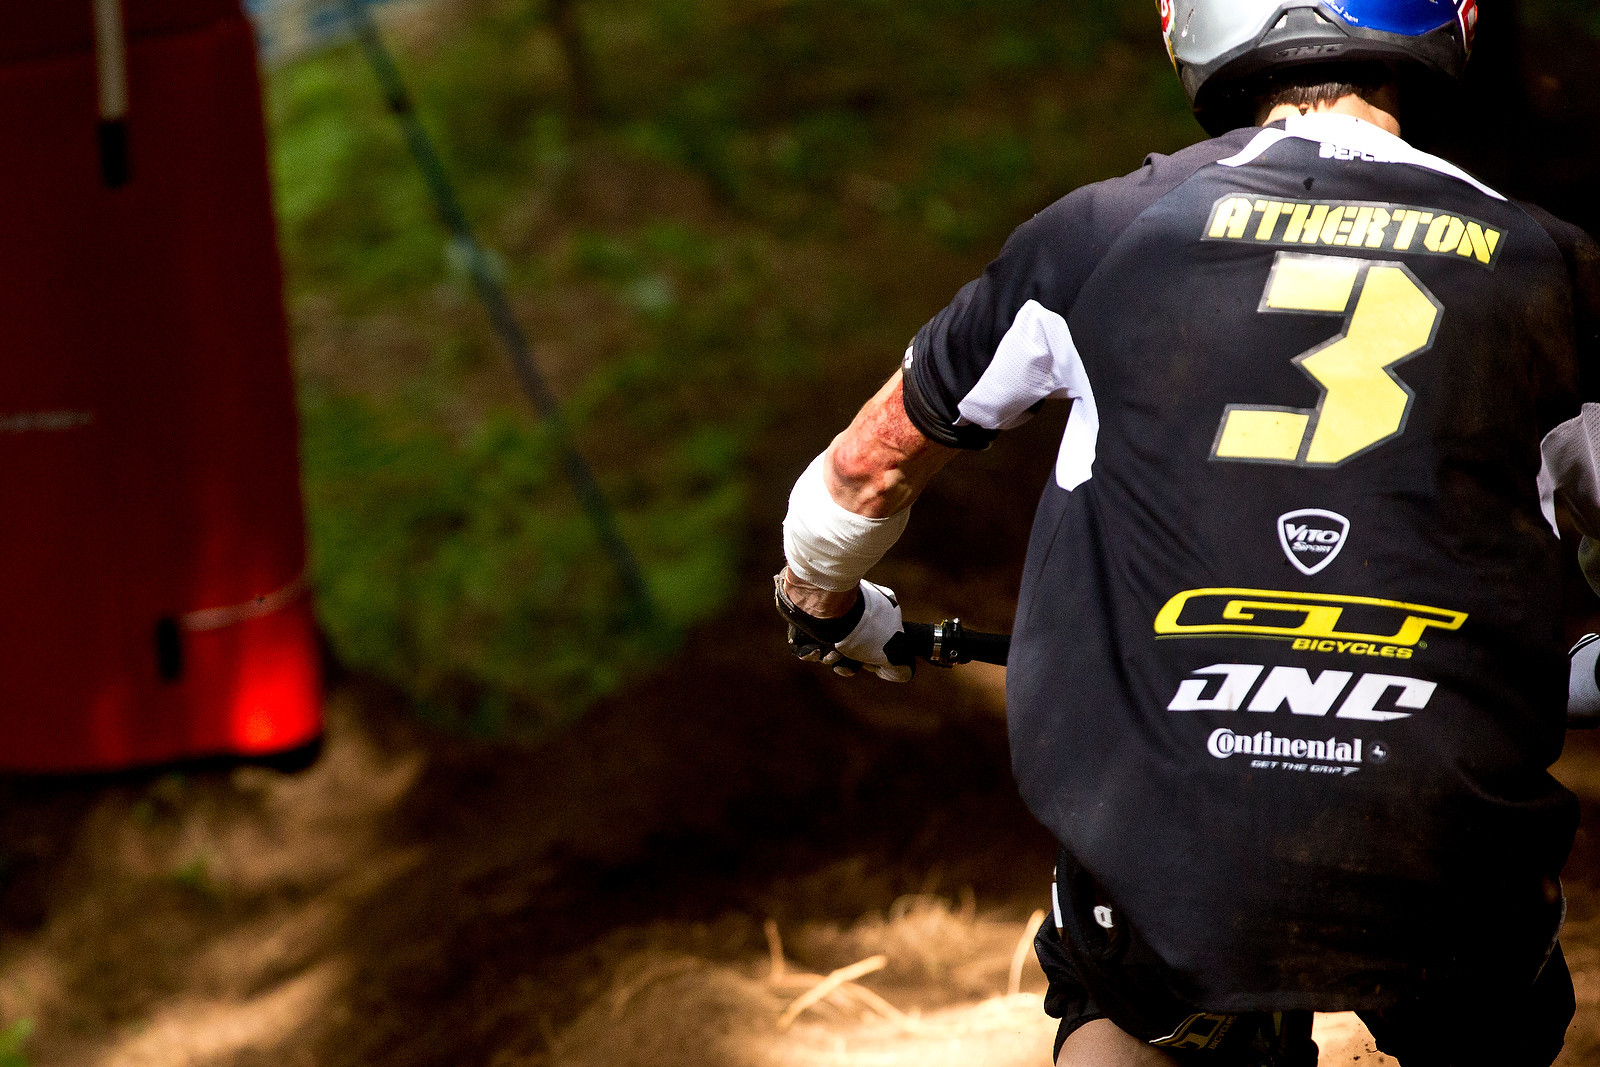 Gee Atherton, 3 Stitches at Val di Sole - 2012 UCI World Cup, Val di Sole Day 2 - Mountain Biking Pictures - Vital MTB